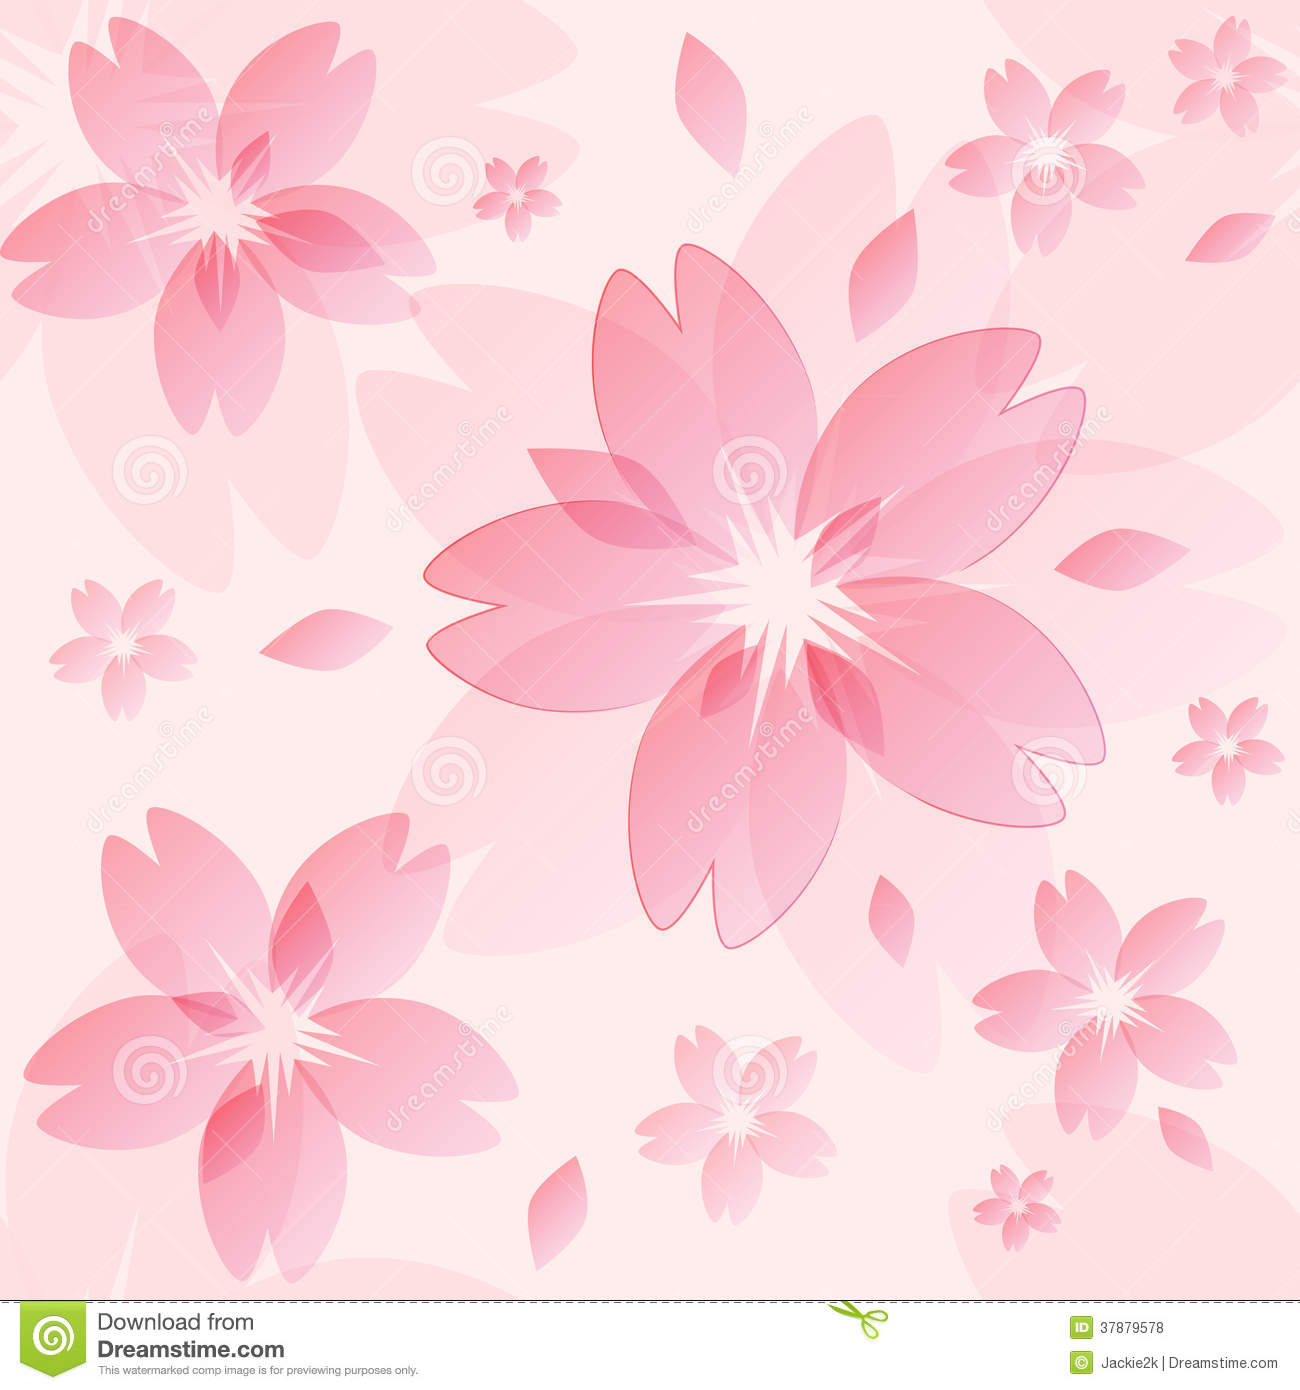 Sakura Blossom Texture Royalty Free Stock Photos - Image: 37879578